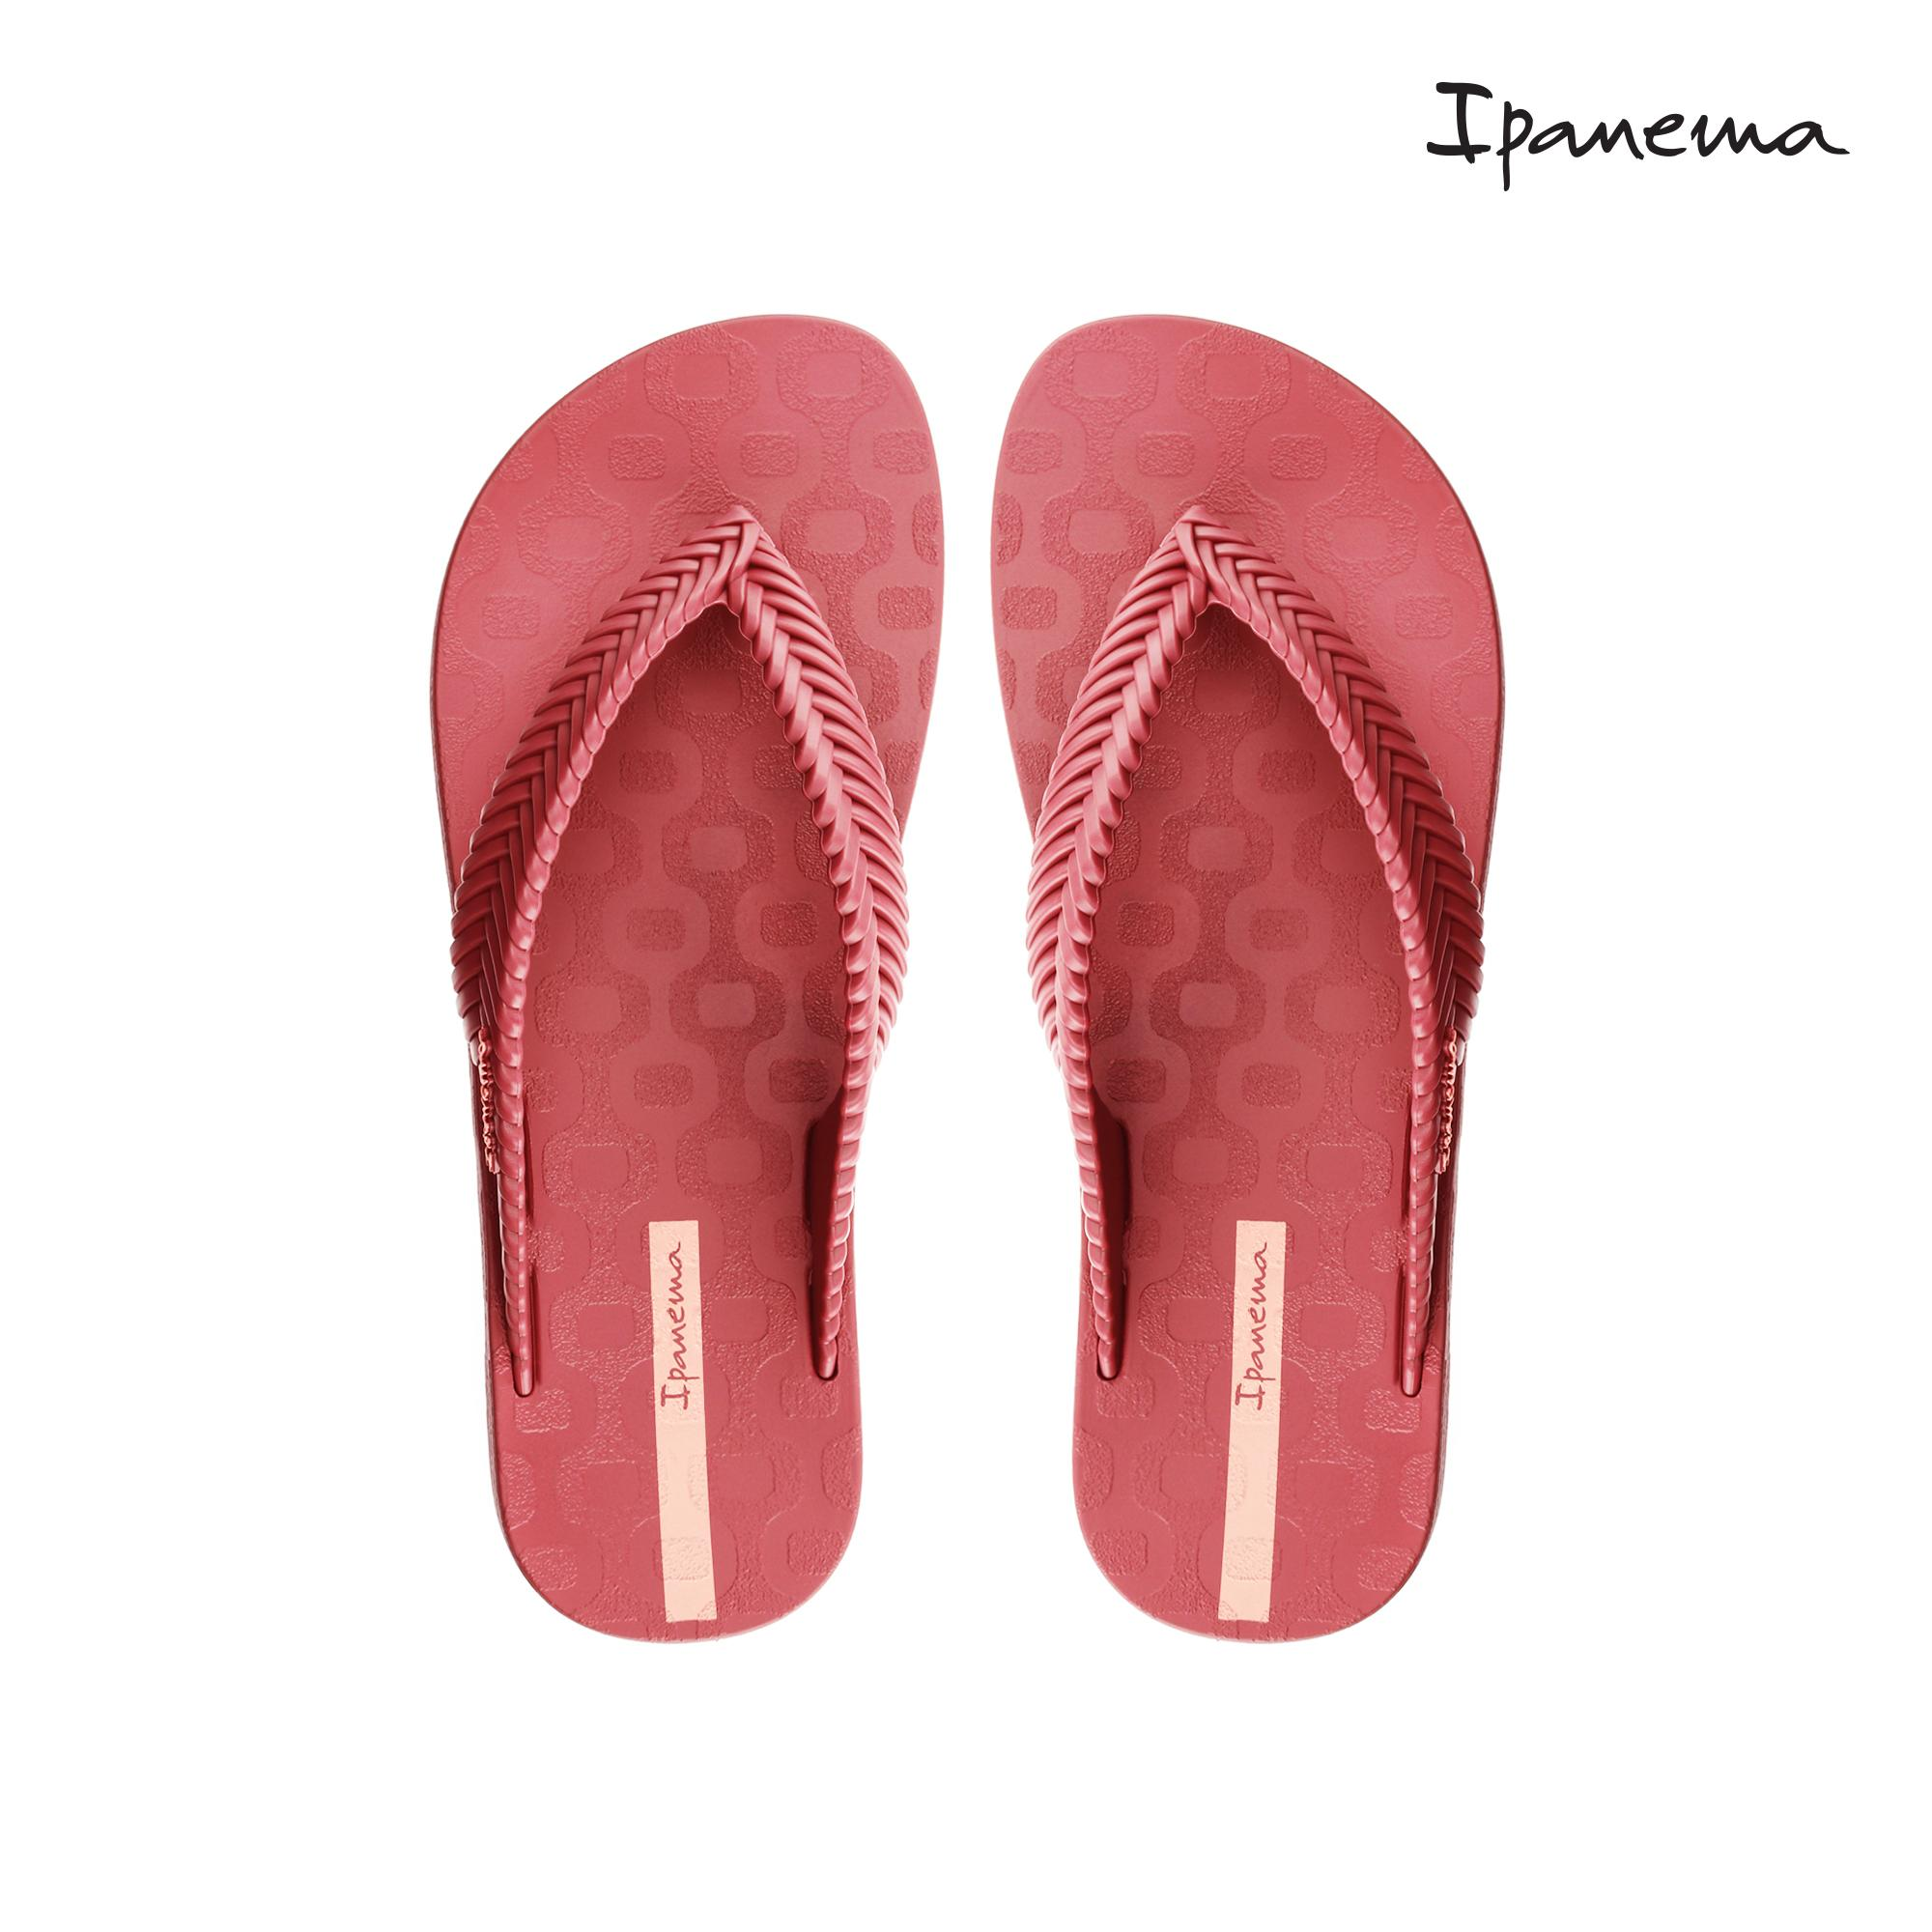 fcd304252138 Ipanema Philippines  Ipanema price list - Ipanema Flip Flop ...